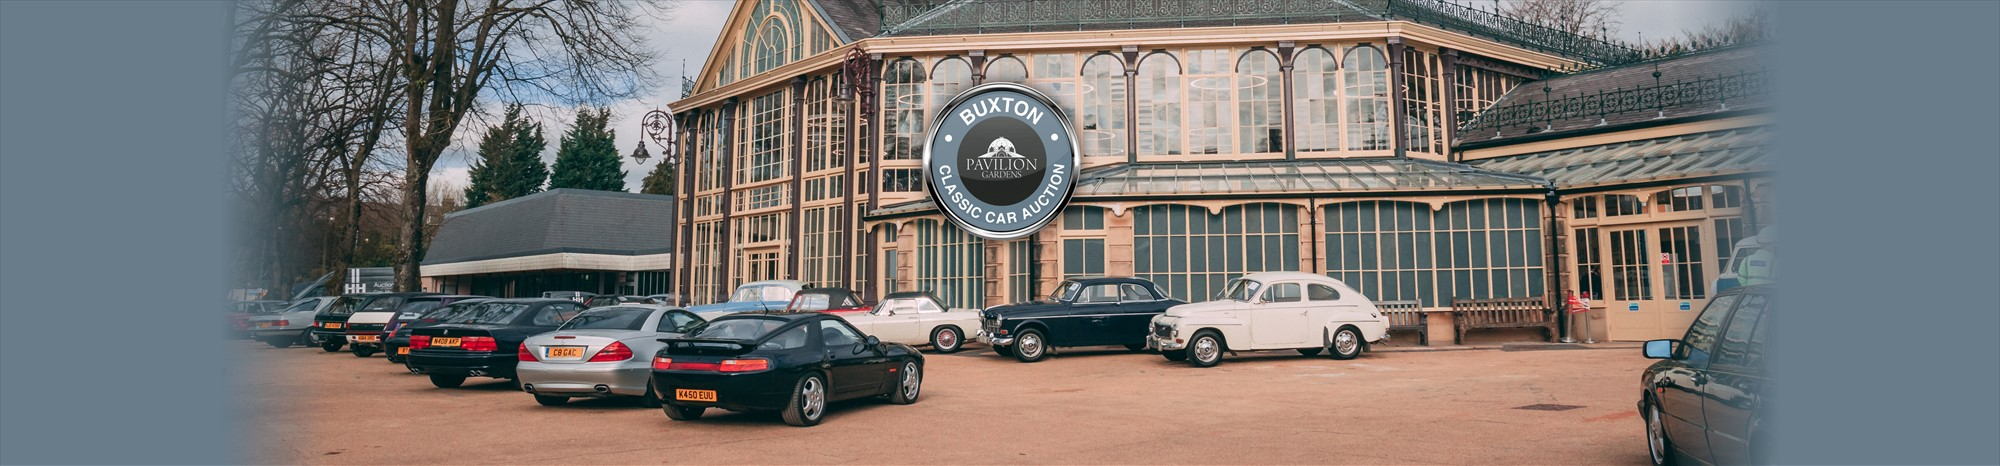 Classic Cars parked outside The Pavilion Gardens in Buxton